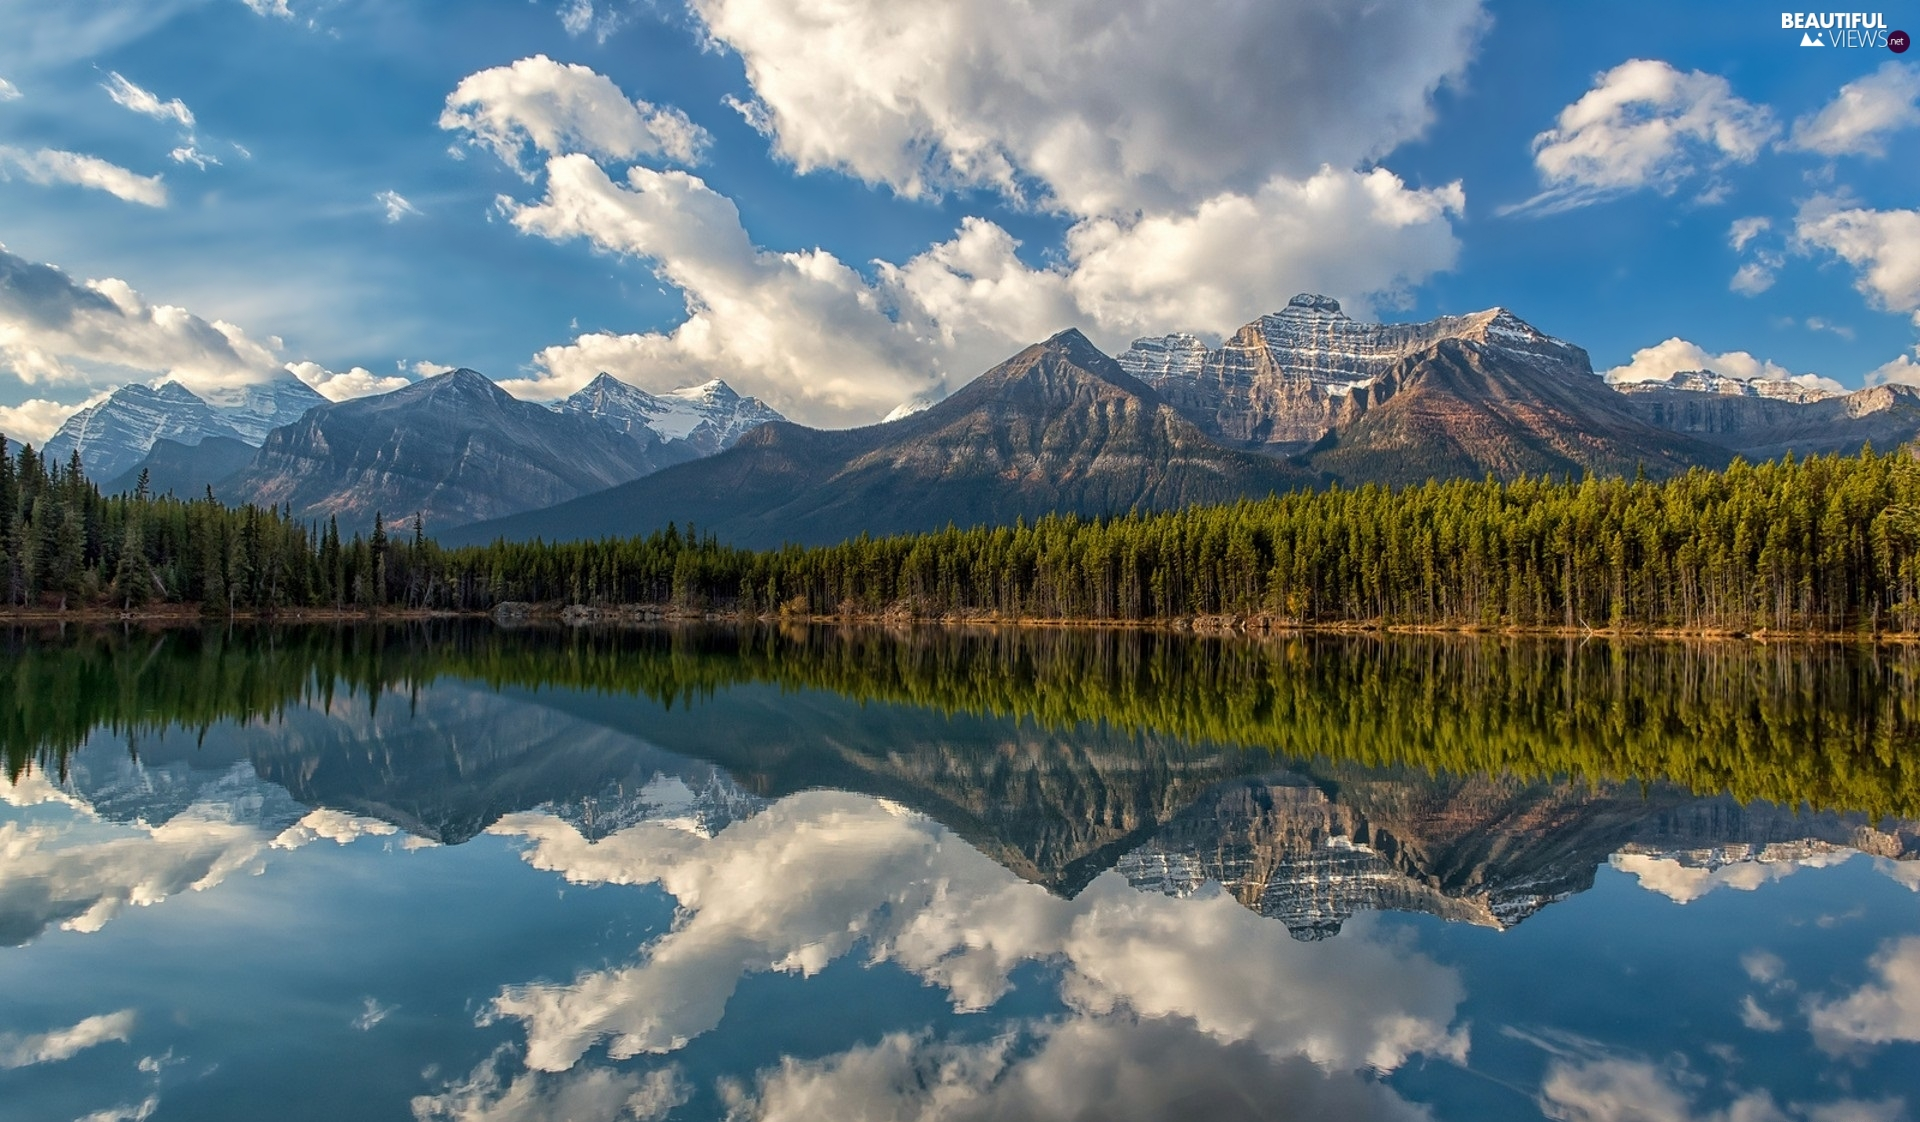 clouds, reflection, Mountains, Spruces, lake